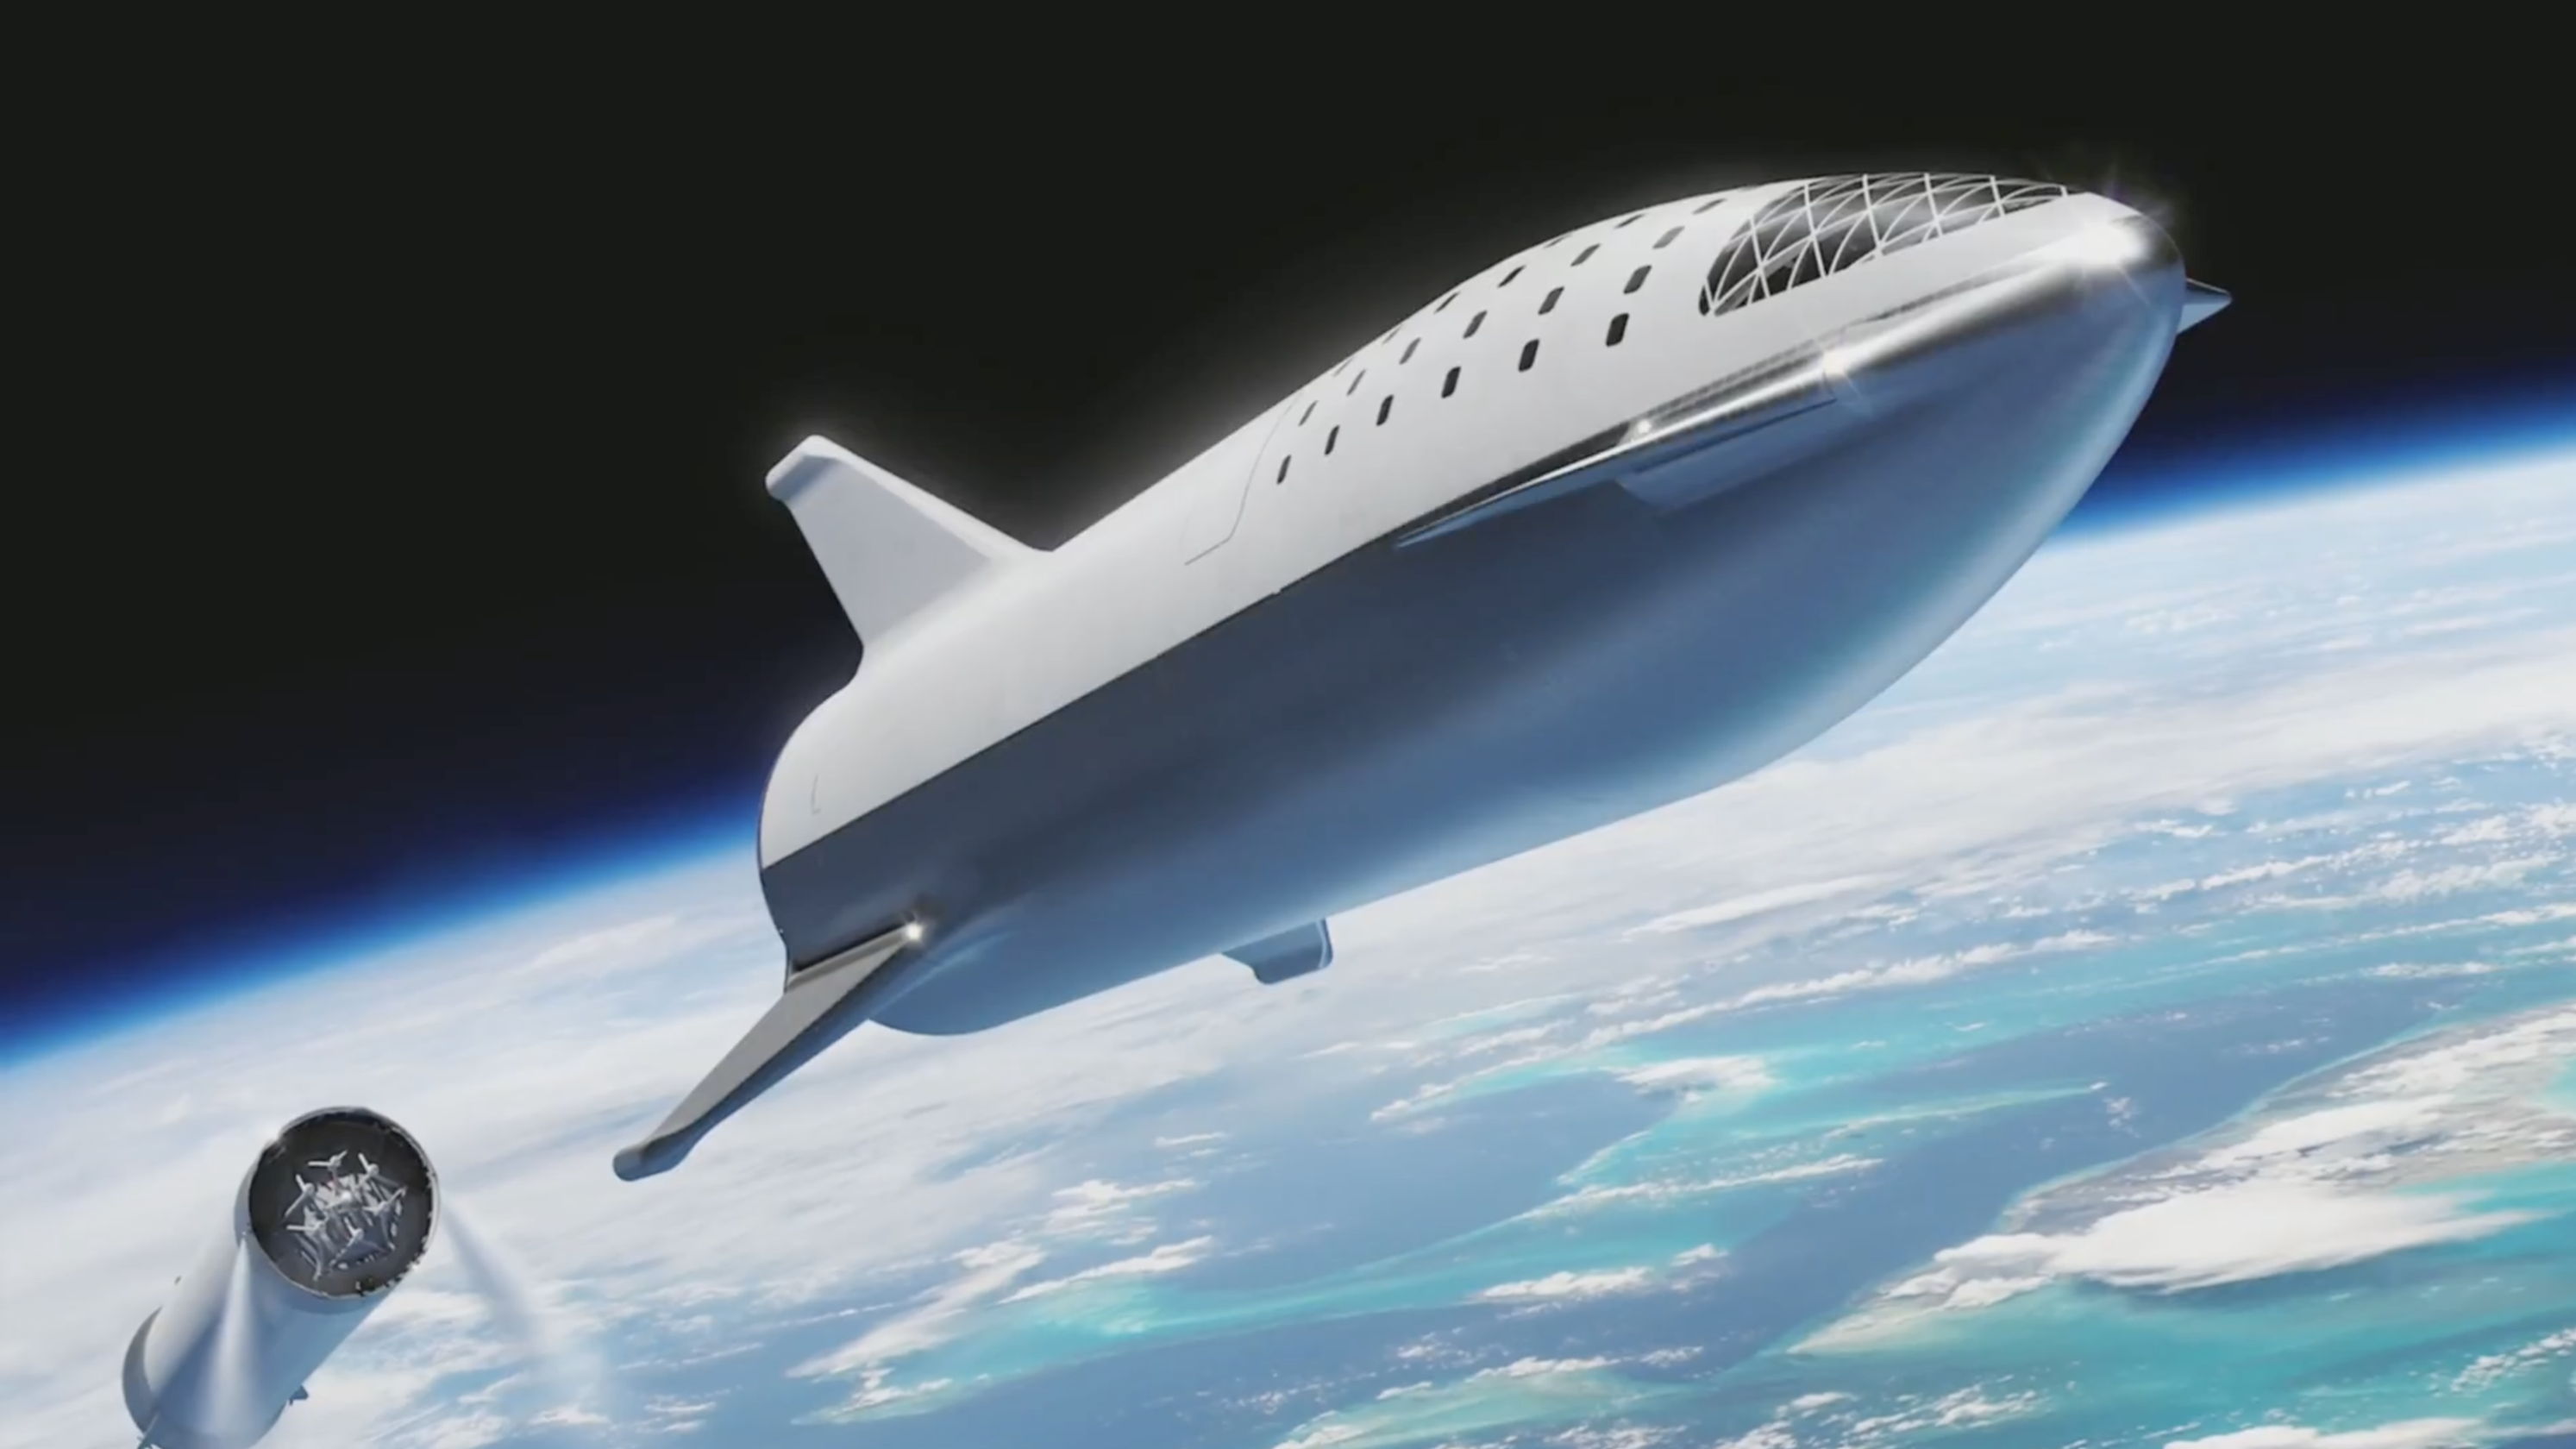 SpaceX's Monster Spaceship: What Elon Musk Wants You To Know